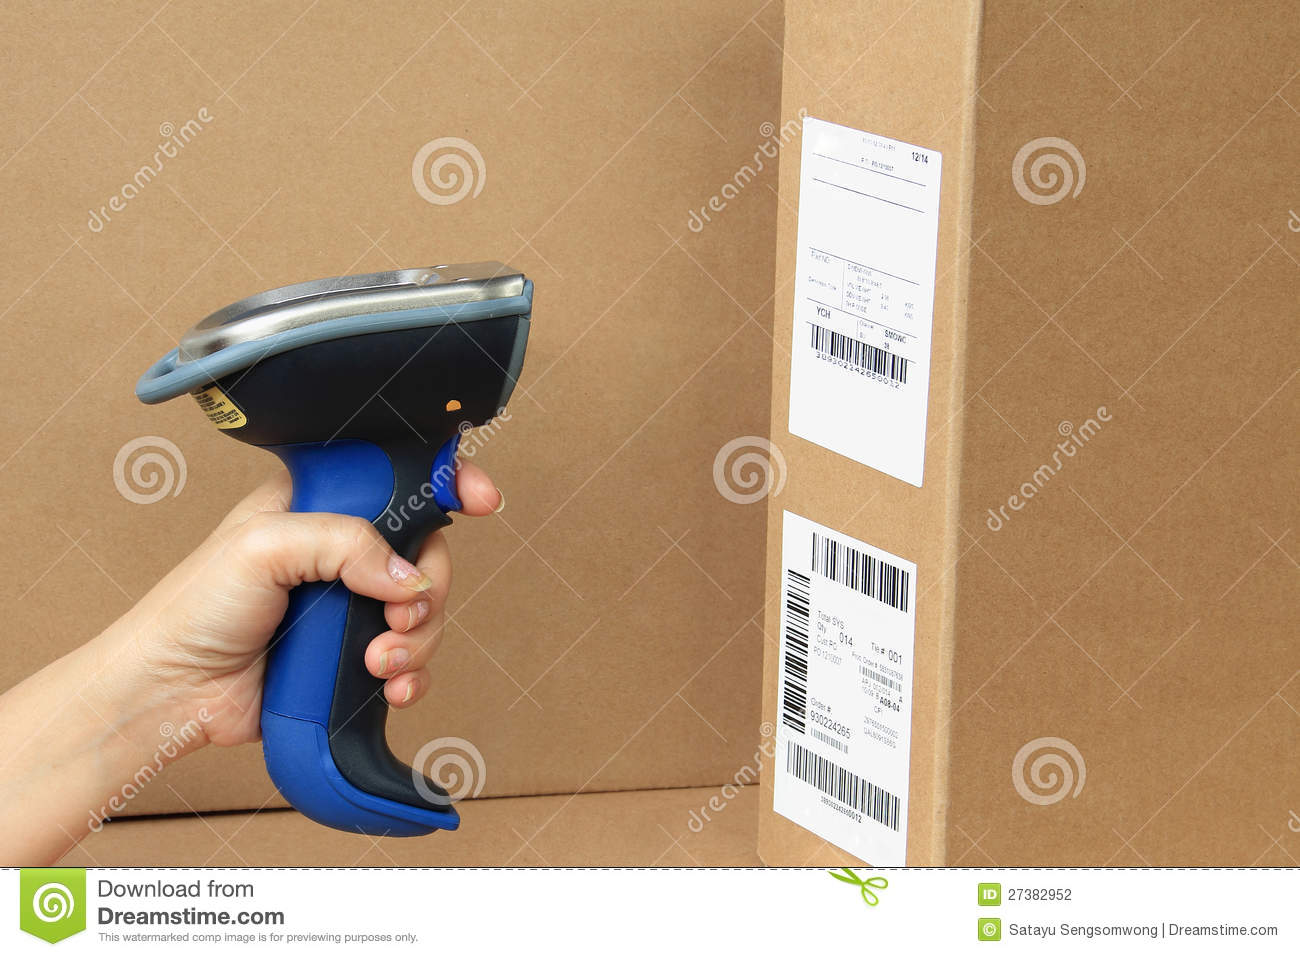 Bluetooth Barcode And Qr Code Scanner Stock Photography